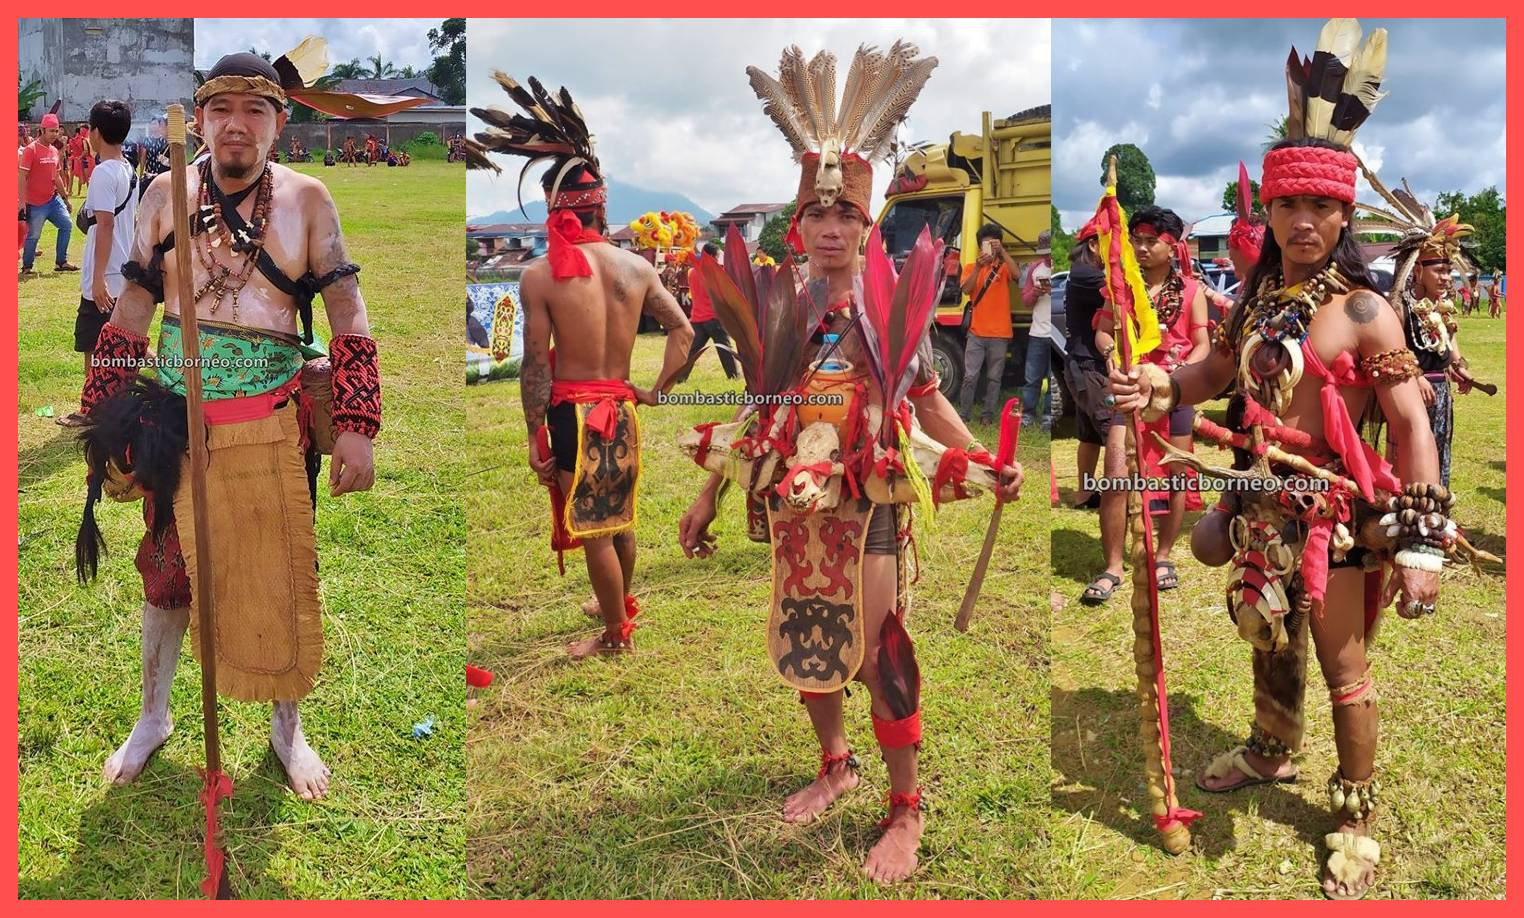 authentic, traditional, event, Ethnic, tribe, Tangkitn raksasa, backpackers, destination, Tourism, tourist attraction, travel guide, Borneo, 印尼西加里曼丹, 婆罗洲达雅文化, 孟加映原住民部落